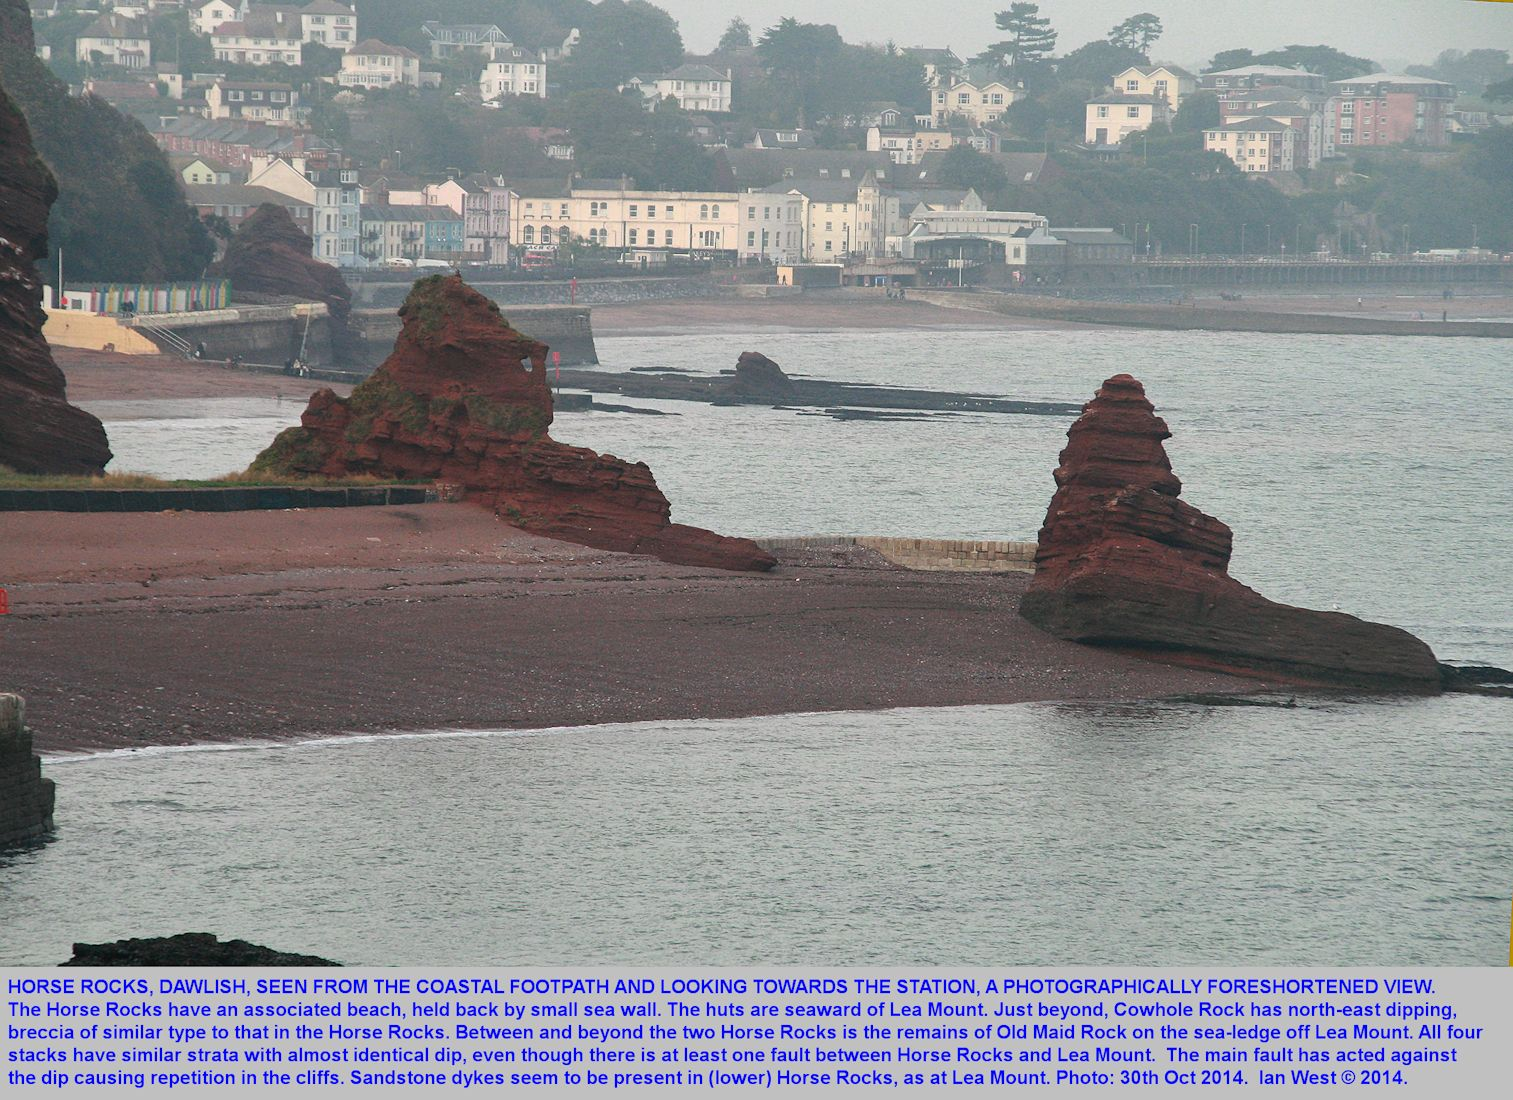 Horse Rocks, of Teignmouth Breccia, seen from the coastal footpath and looking from south to north, Dawlish,  Devon, 30th October 2014